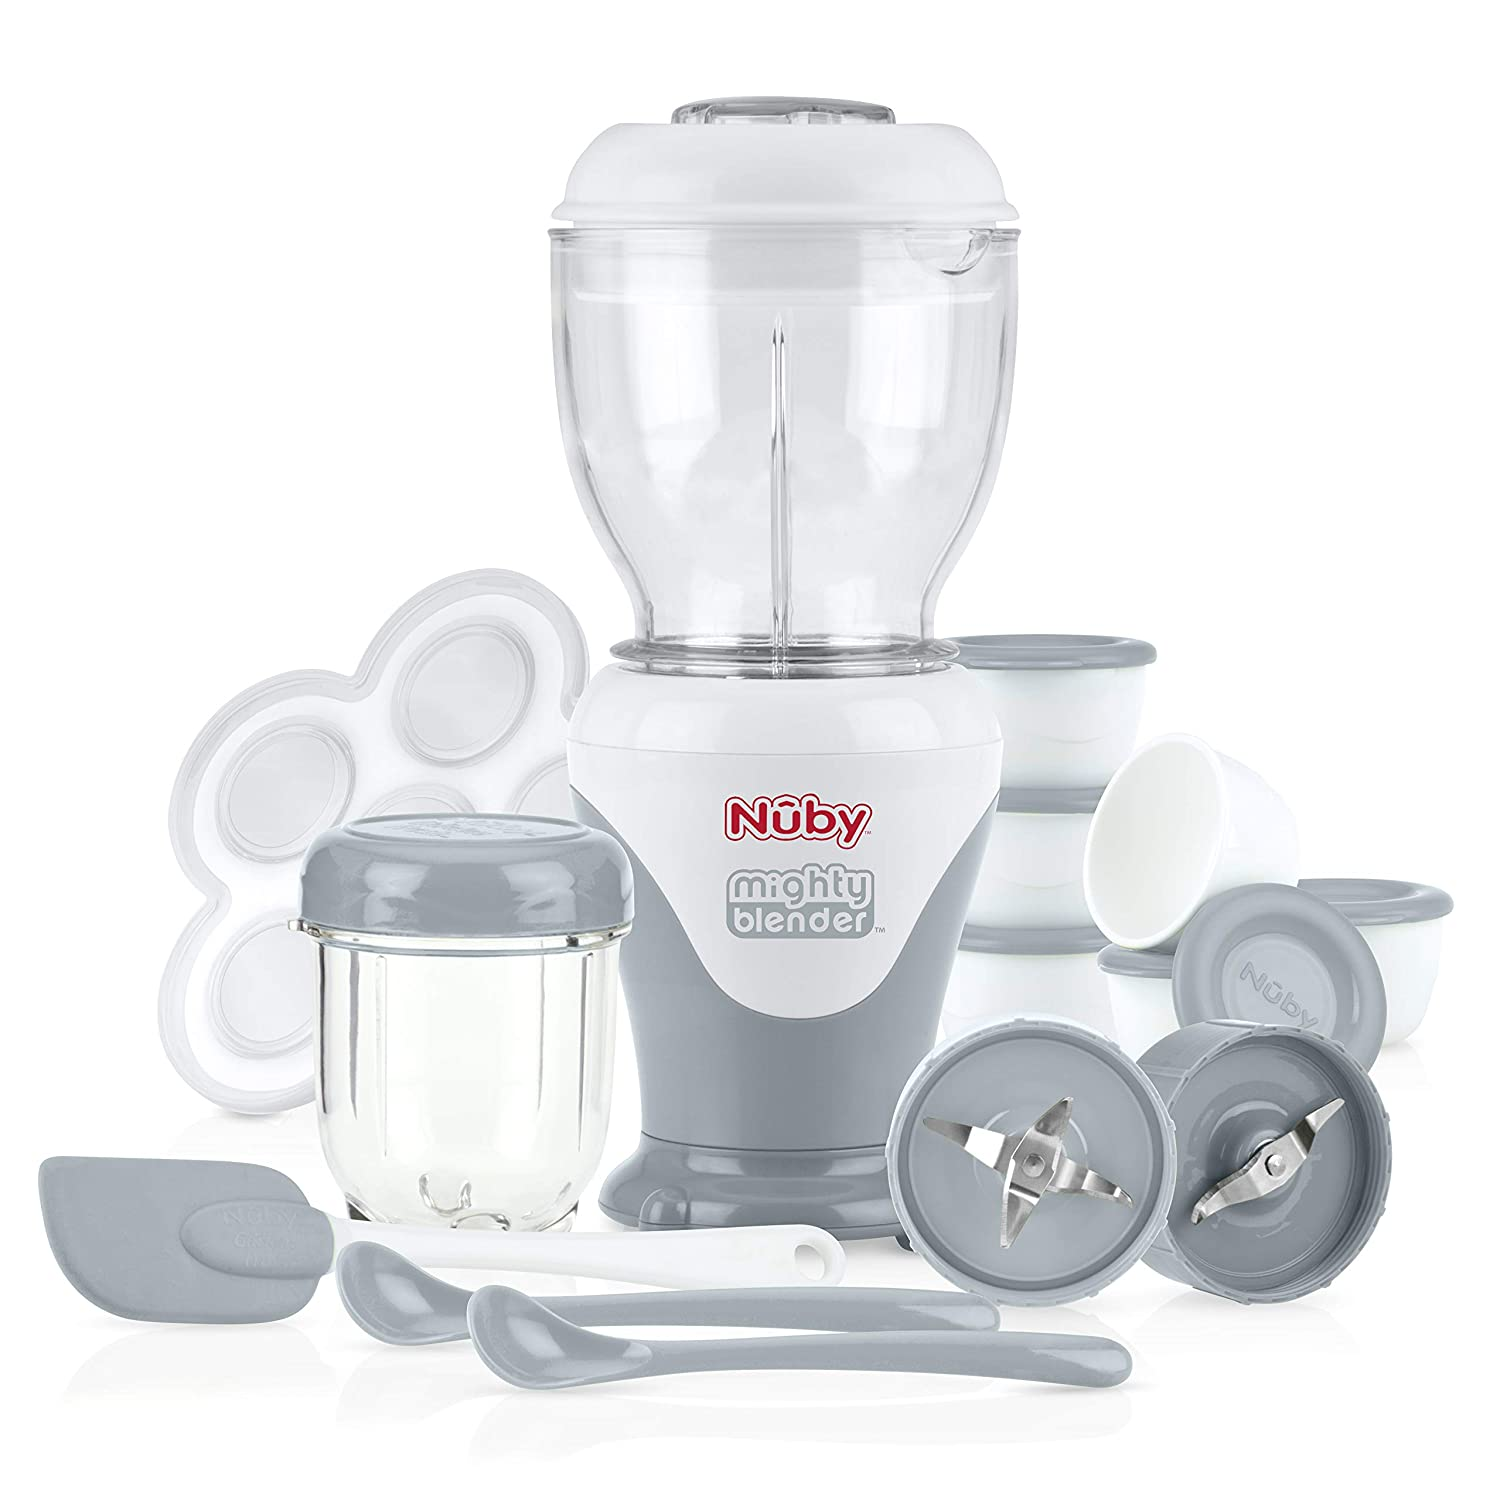 Nuby Mighty Blender with Cook Book, 22-Piece Baby Food Maker Set, Cool Gray